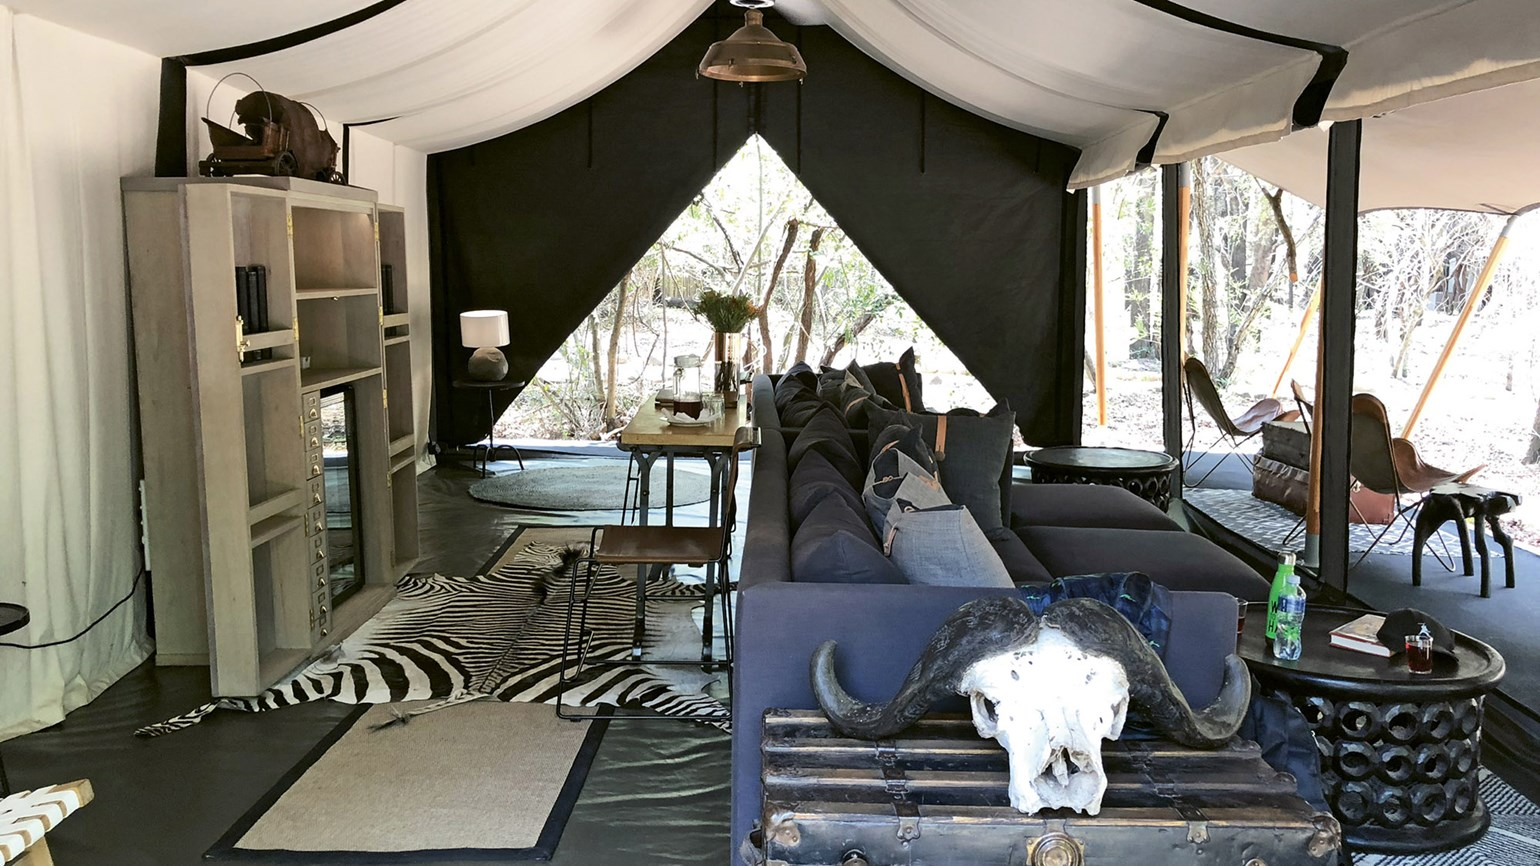 South Africa lodgings feature beauty and beasts